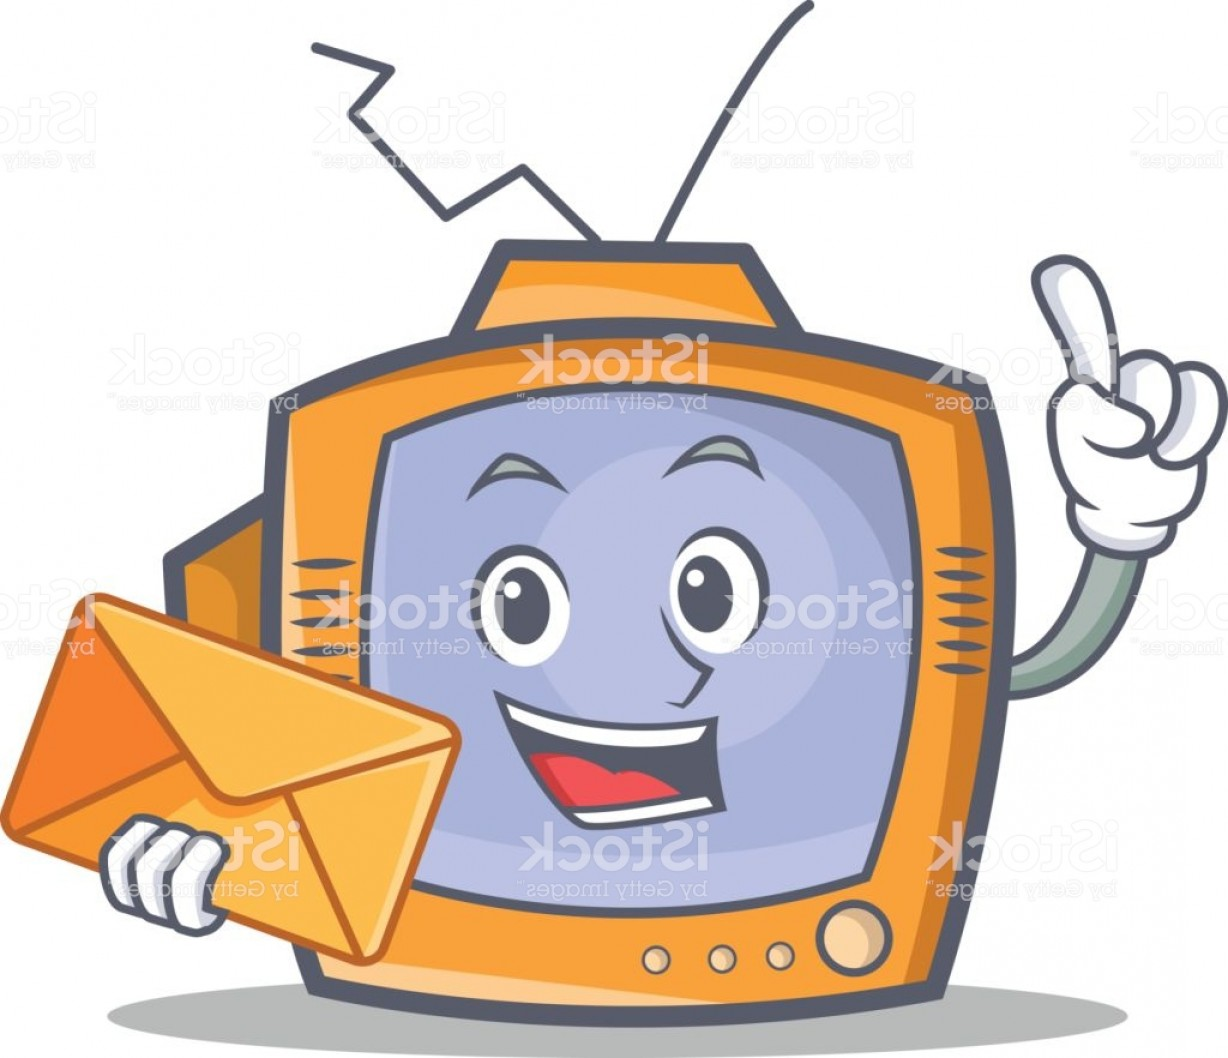 Art Envelopevector: Tv Character Cartoon Object With Envelope Vector Illustration Gm